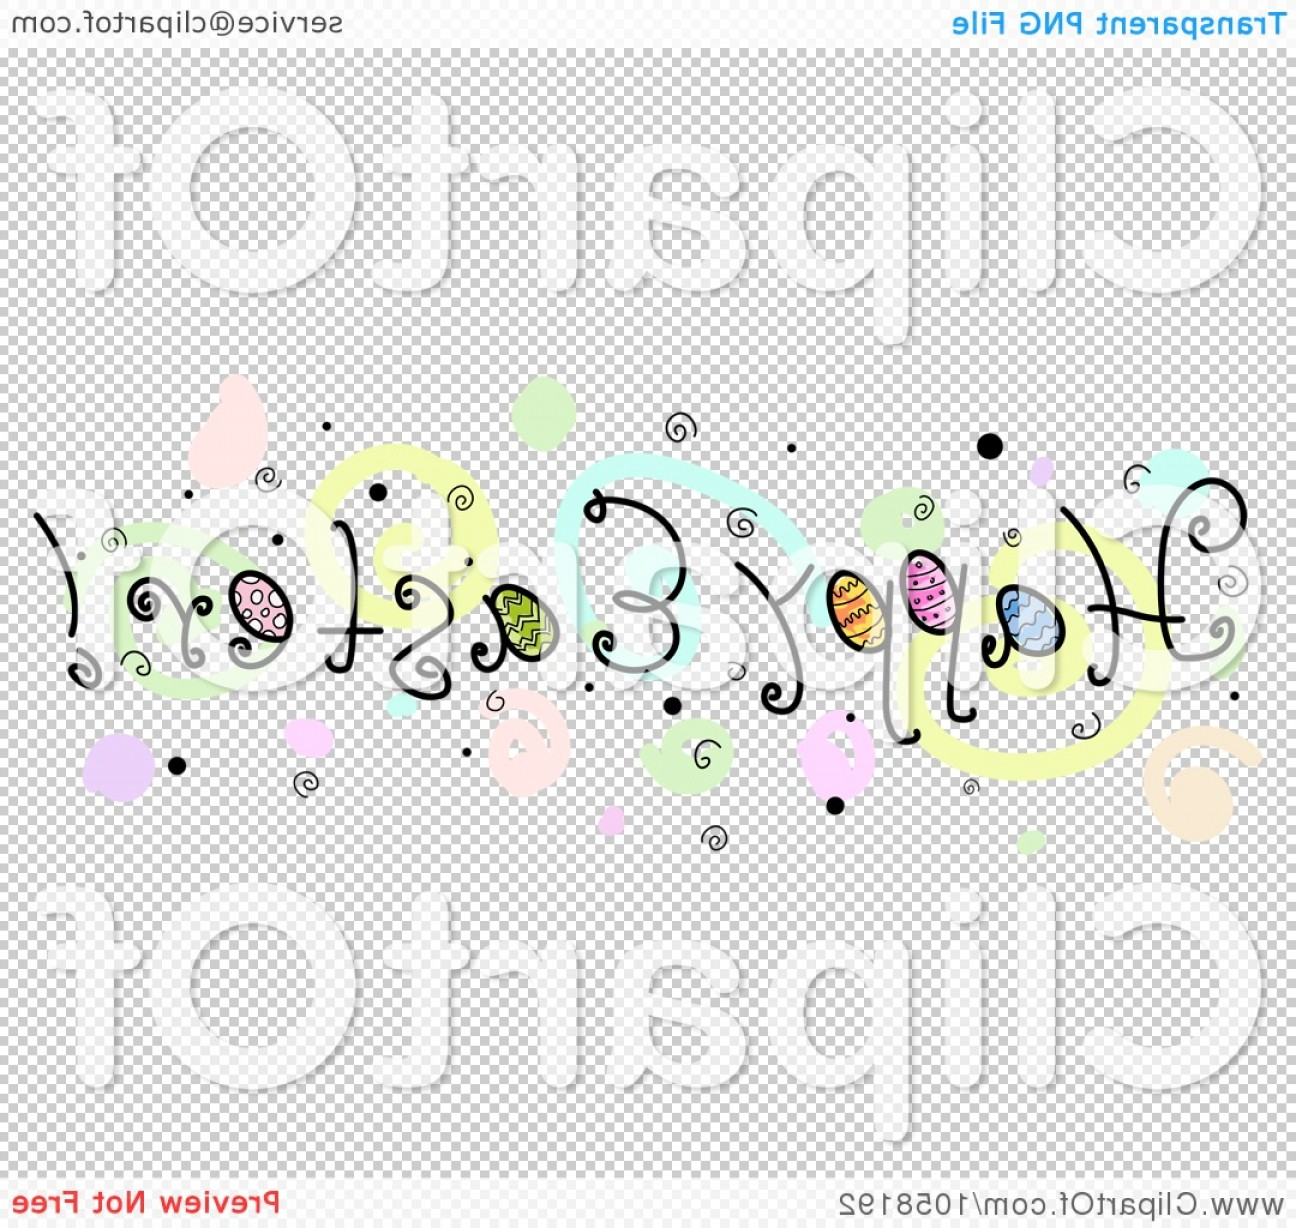 Easter Vector No Background: Happy Easter Greeting With Spirals And Bubbles